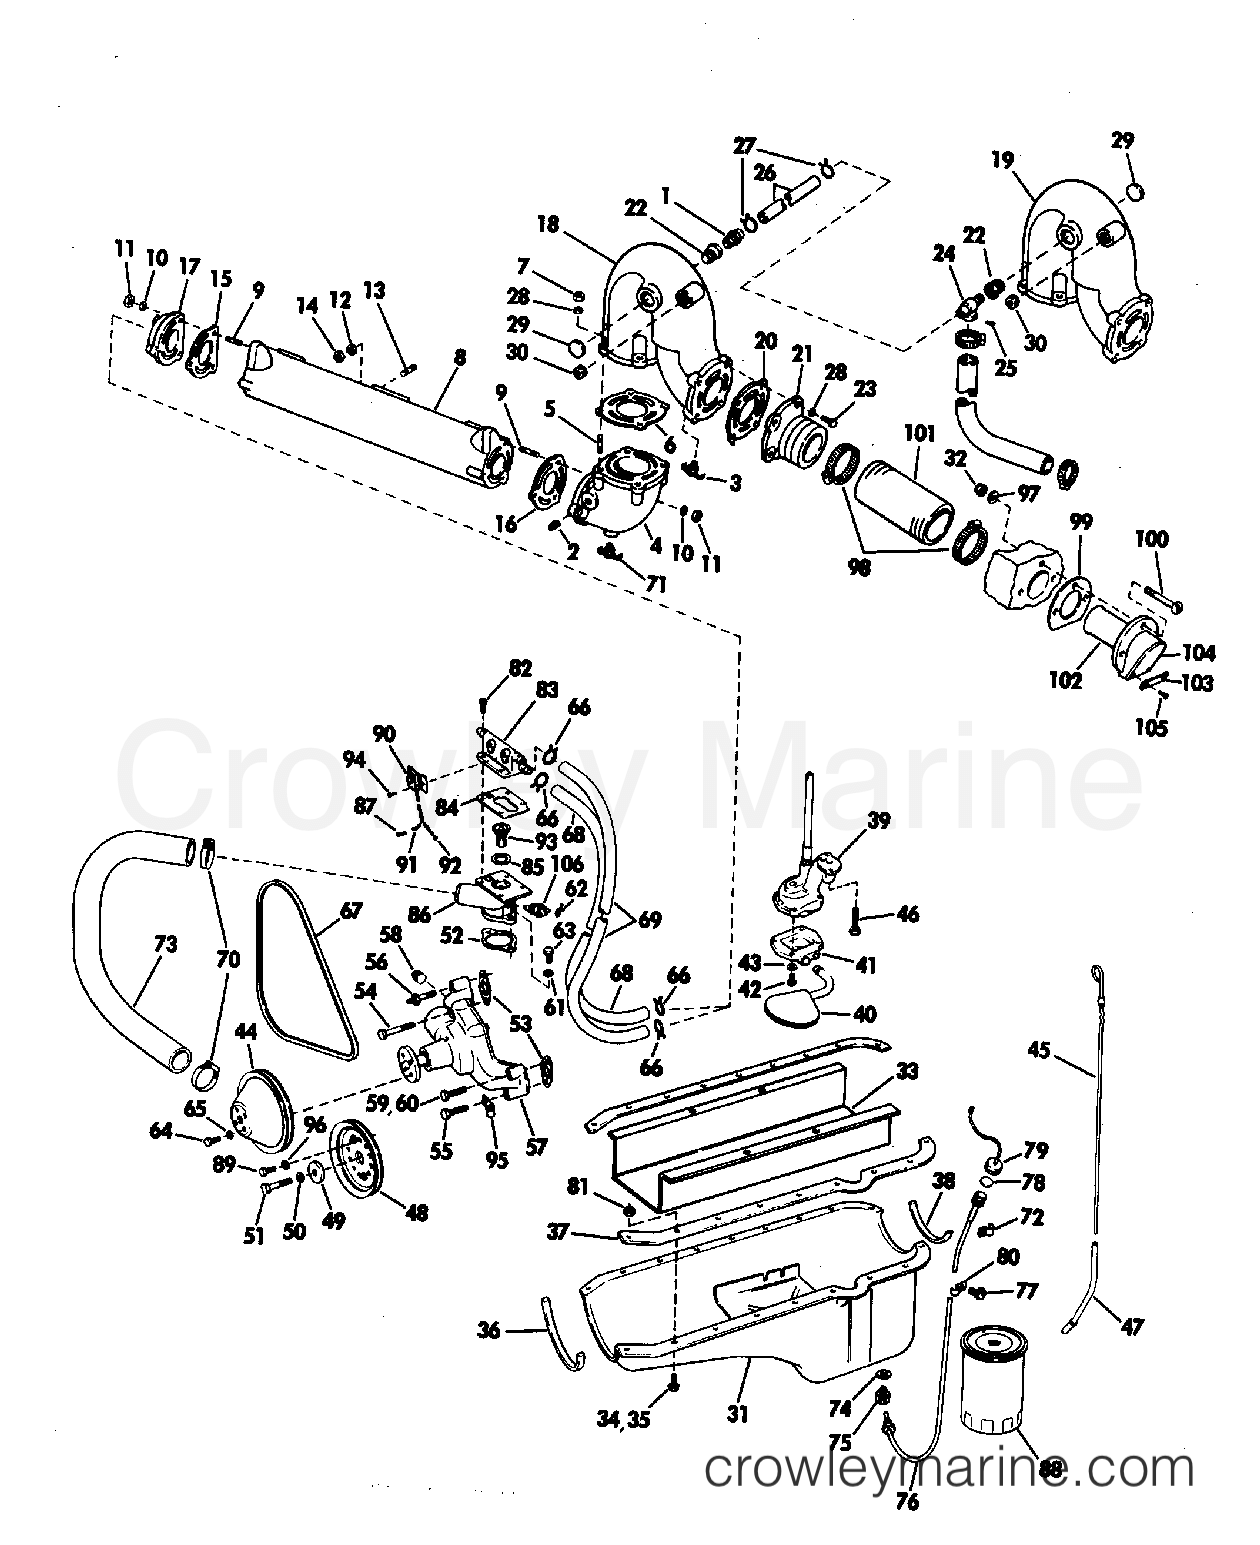 Omc Cooling Diagram Detailed Schematics Chrysler Marine Exhaust Manifold Group 245 Jet Drive 1972 Stern